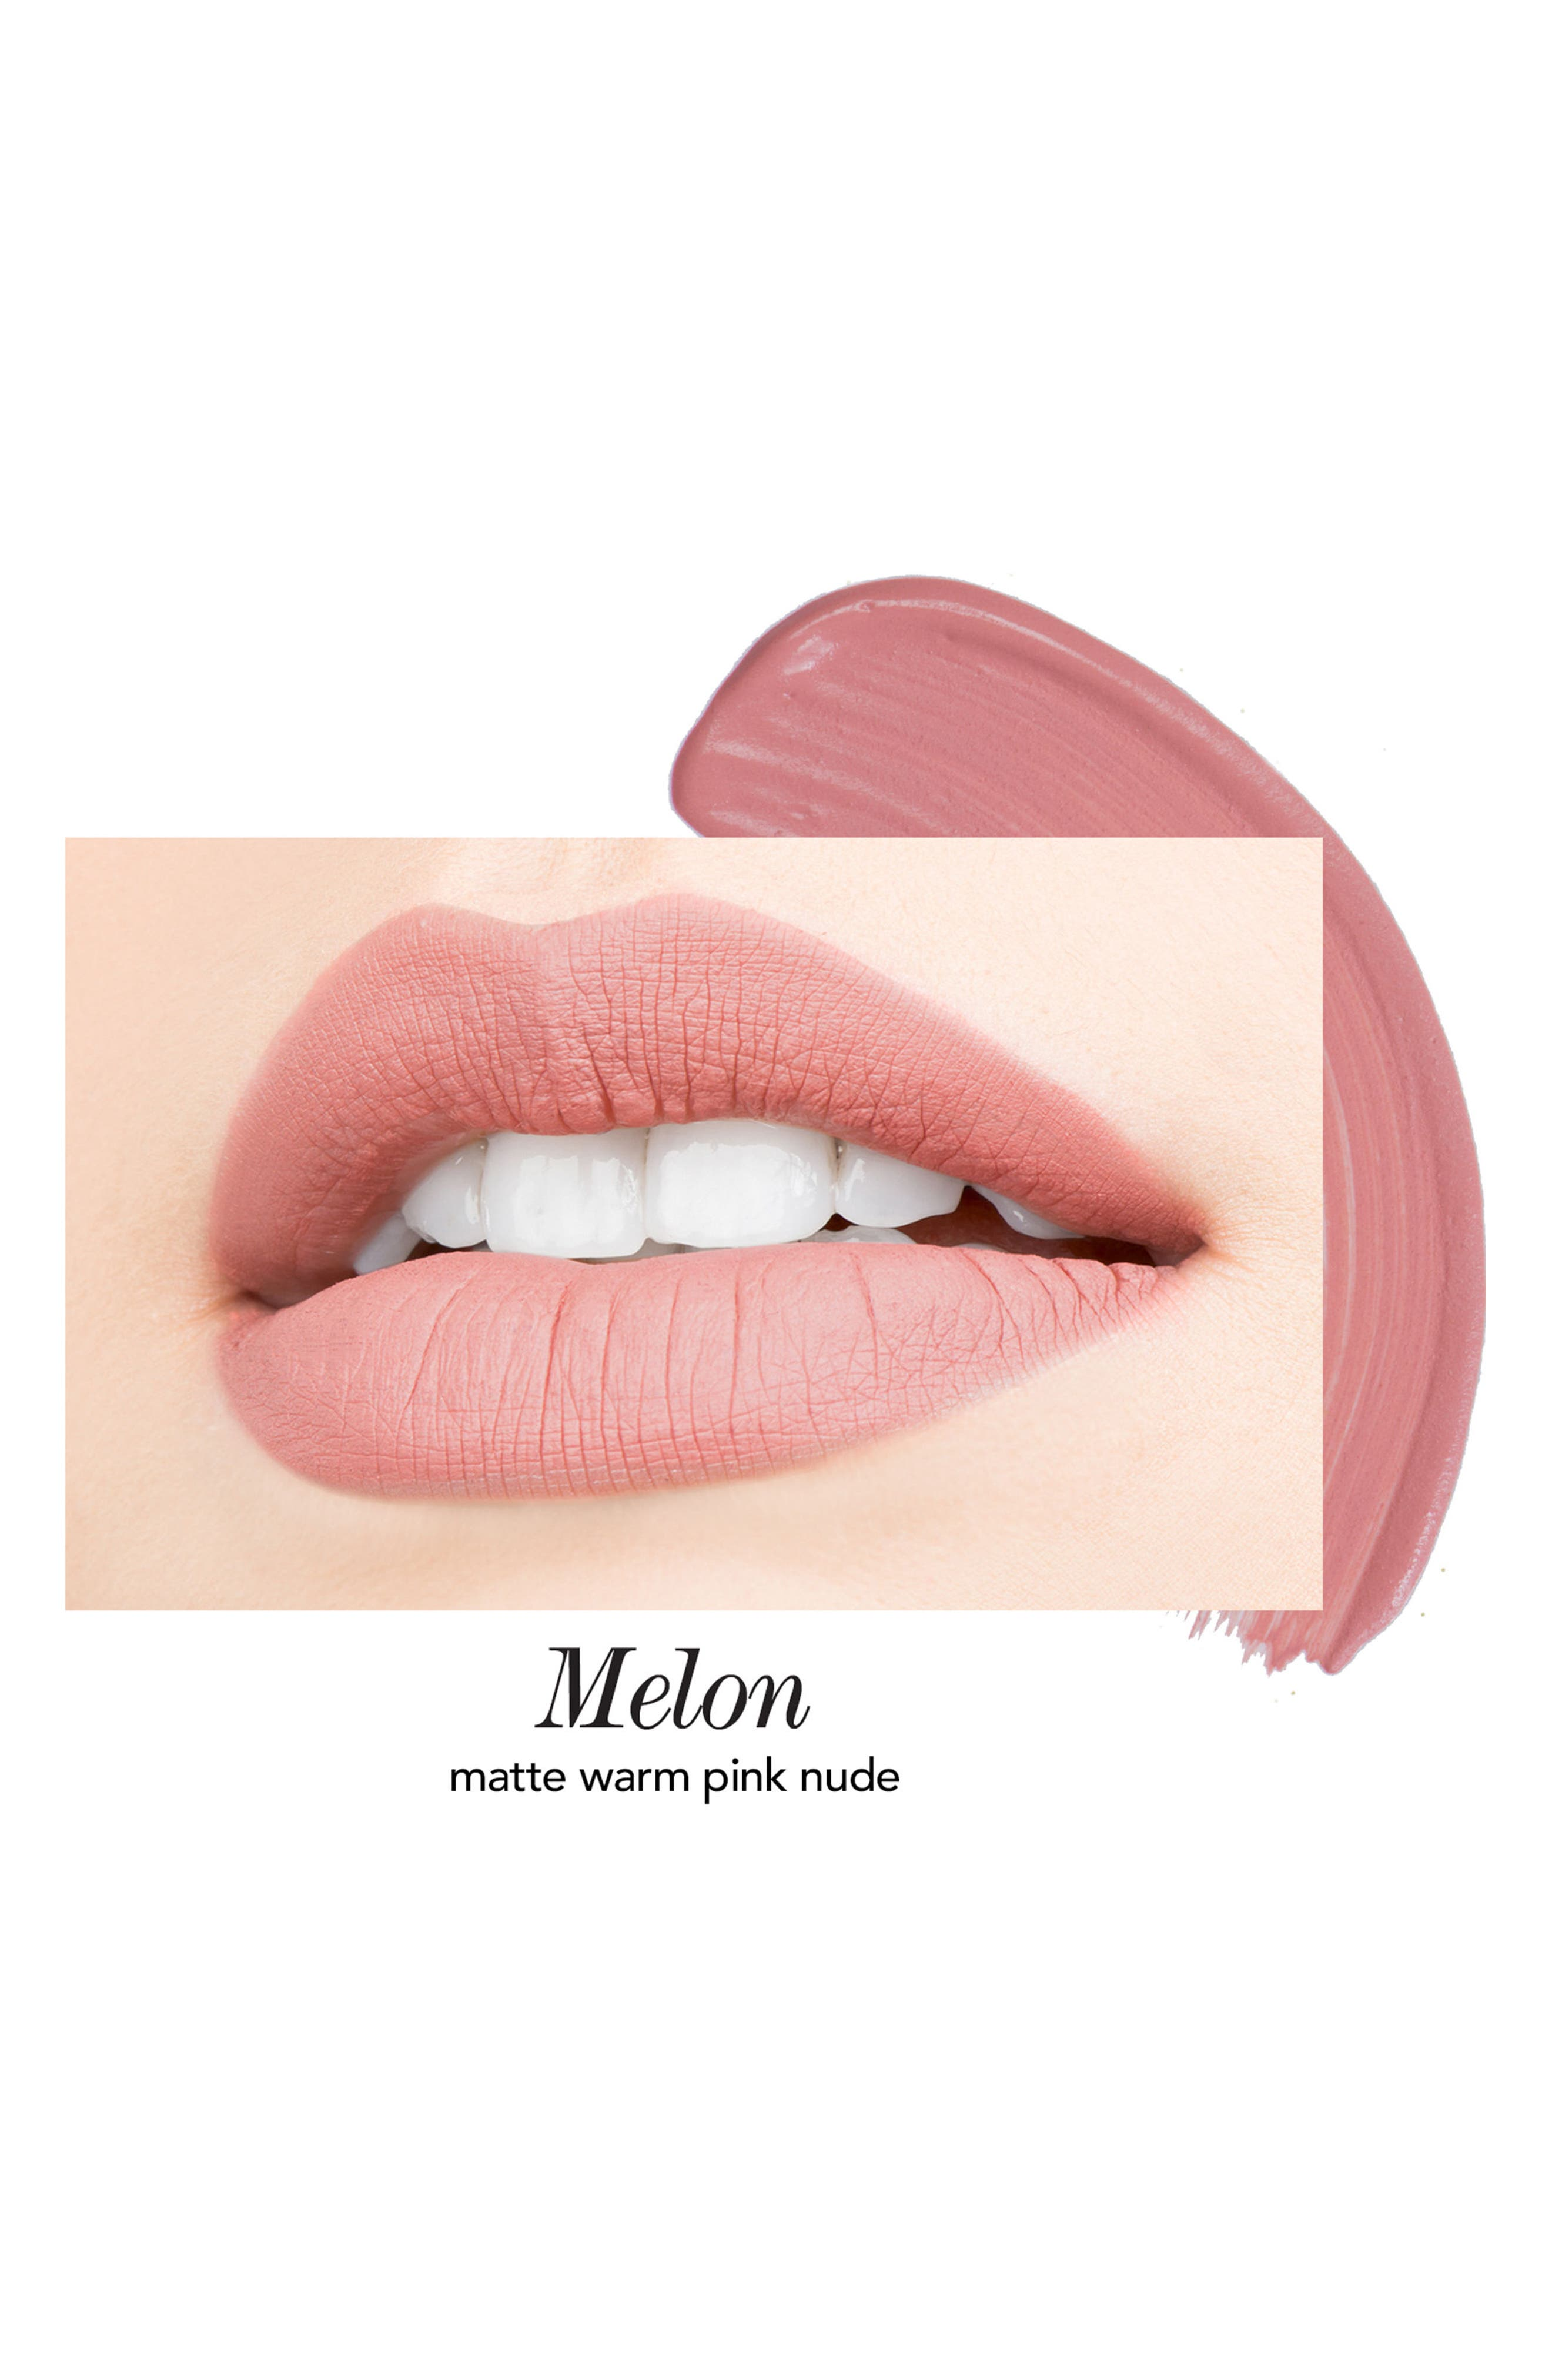 Melon & Citronade Rose Long-Wear Lip Crème Liquid Lipstick Duo,                             Alternate thumbnail 2, color,                             No Color